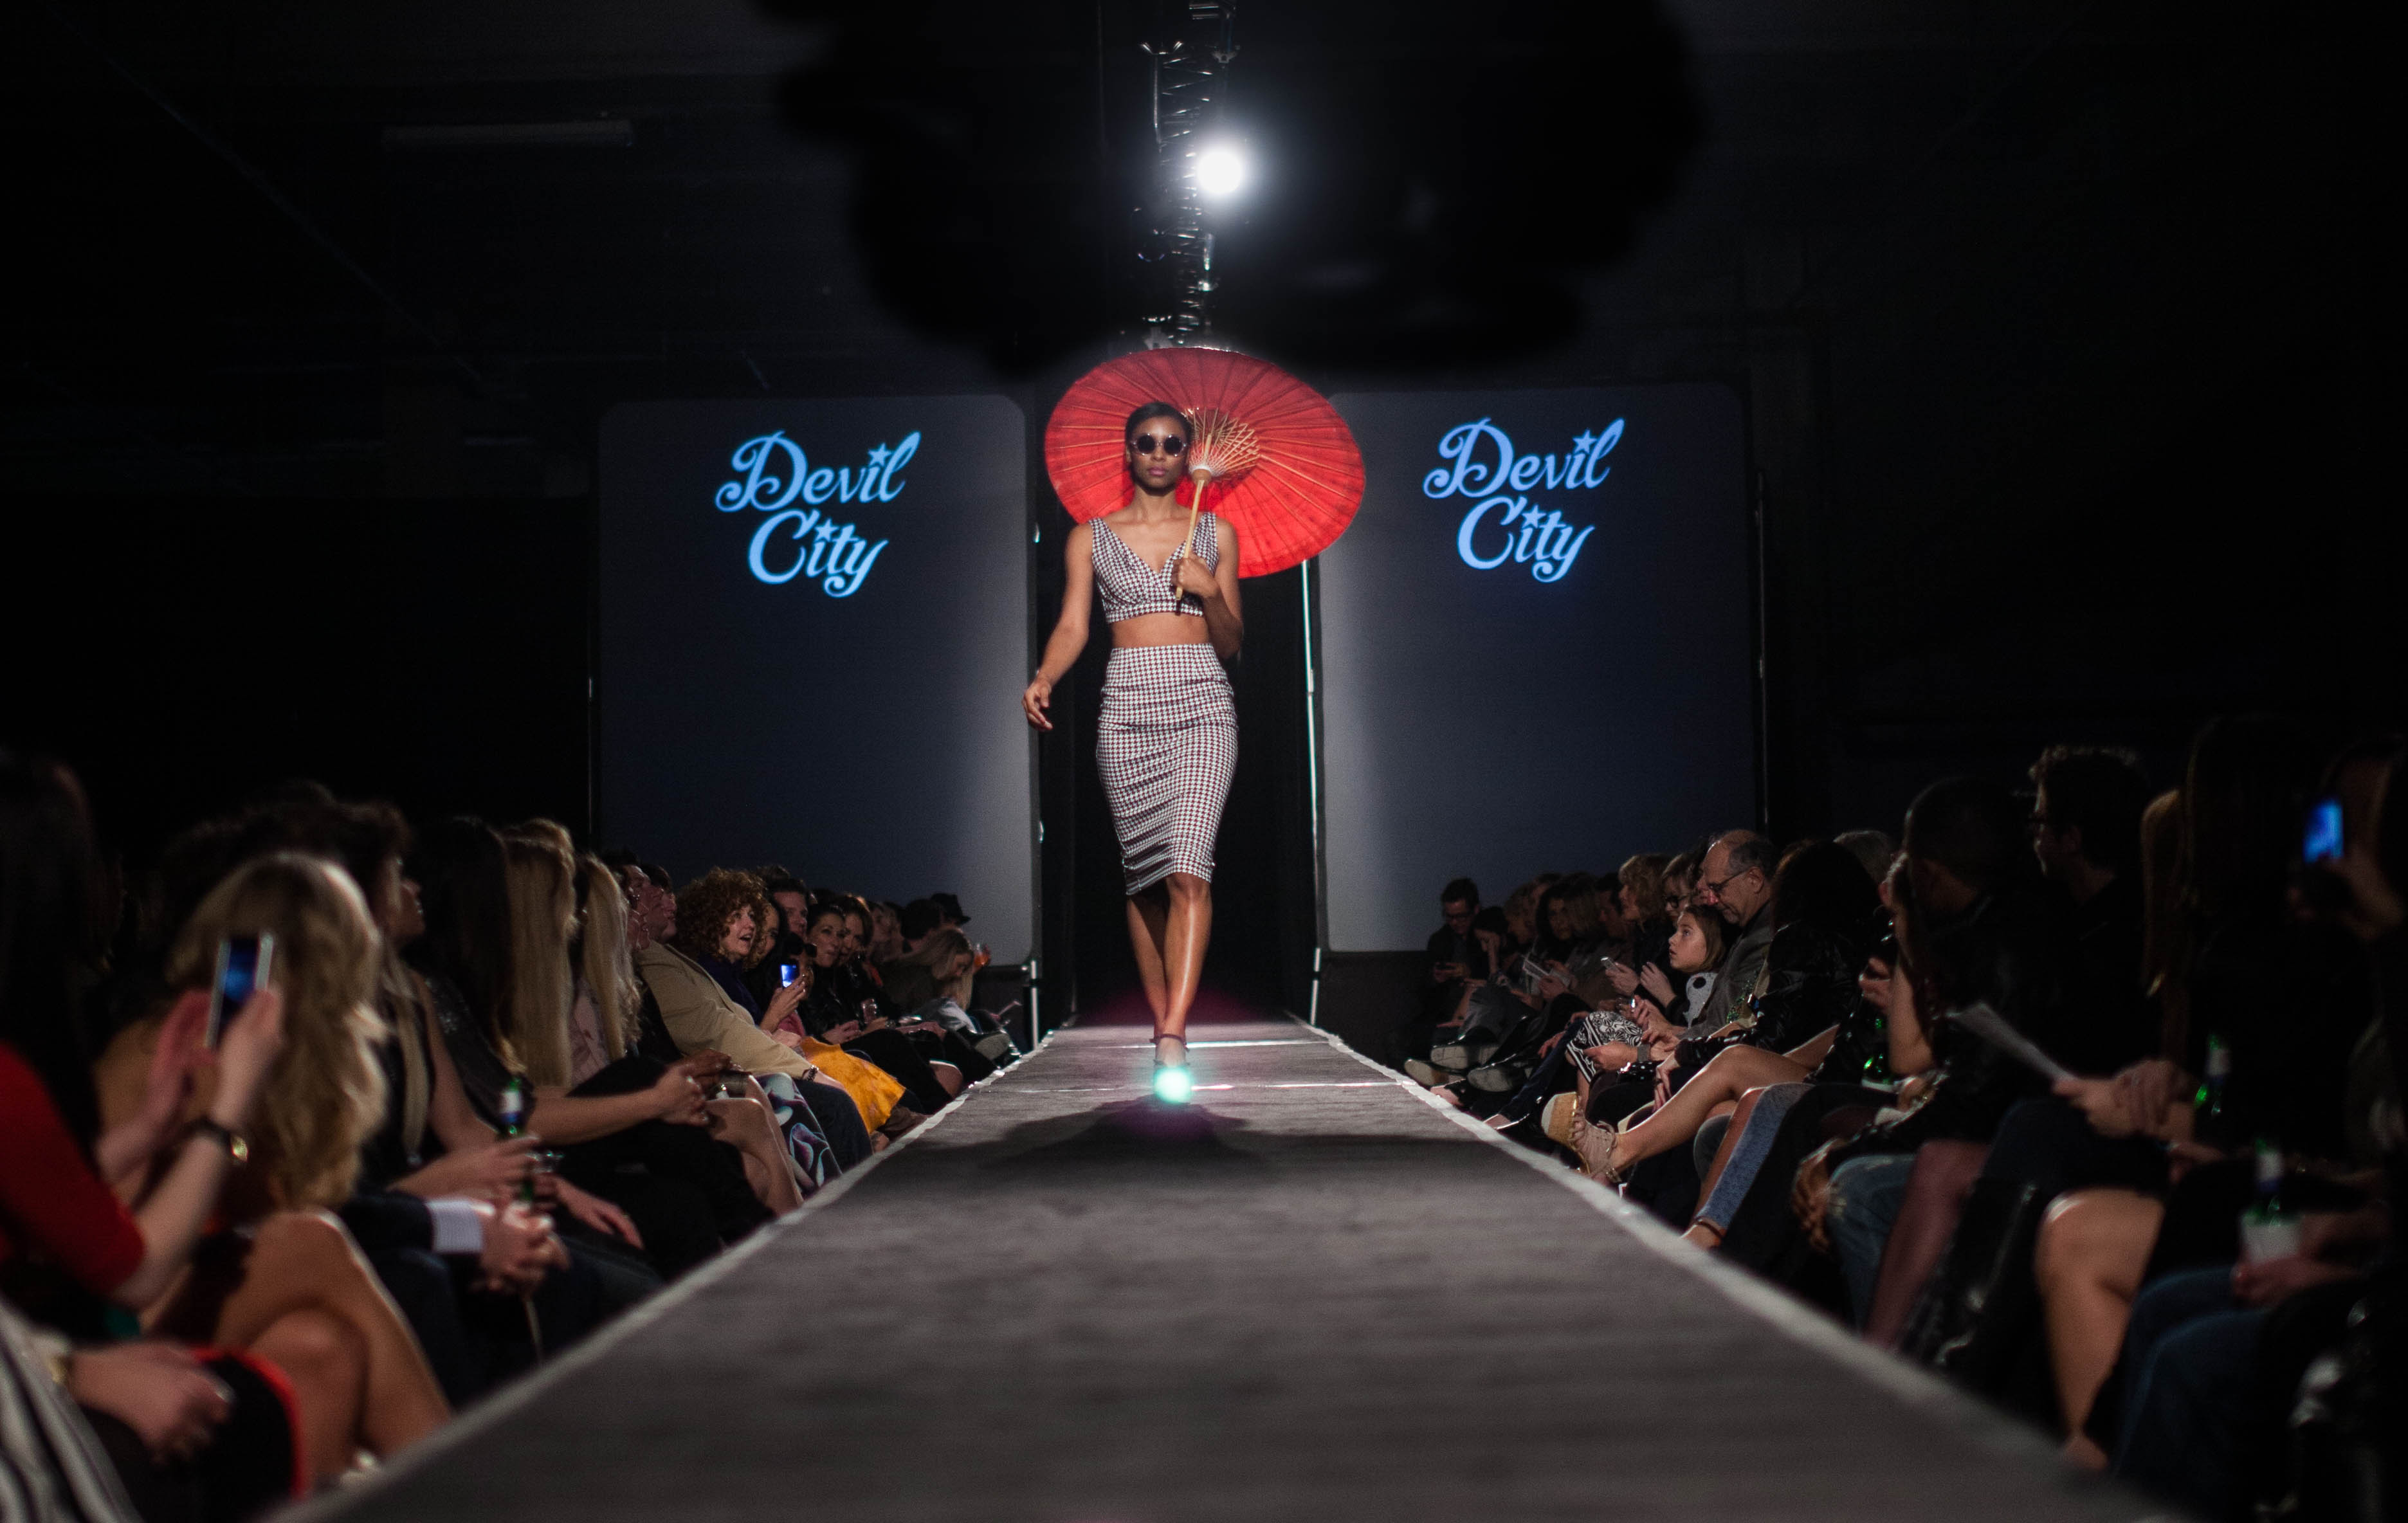 Devil City at the 2013 STL Glow Fashion Show